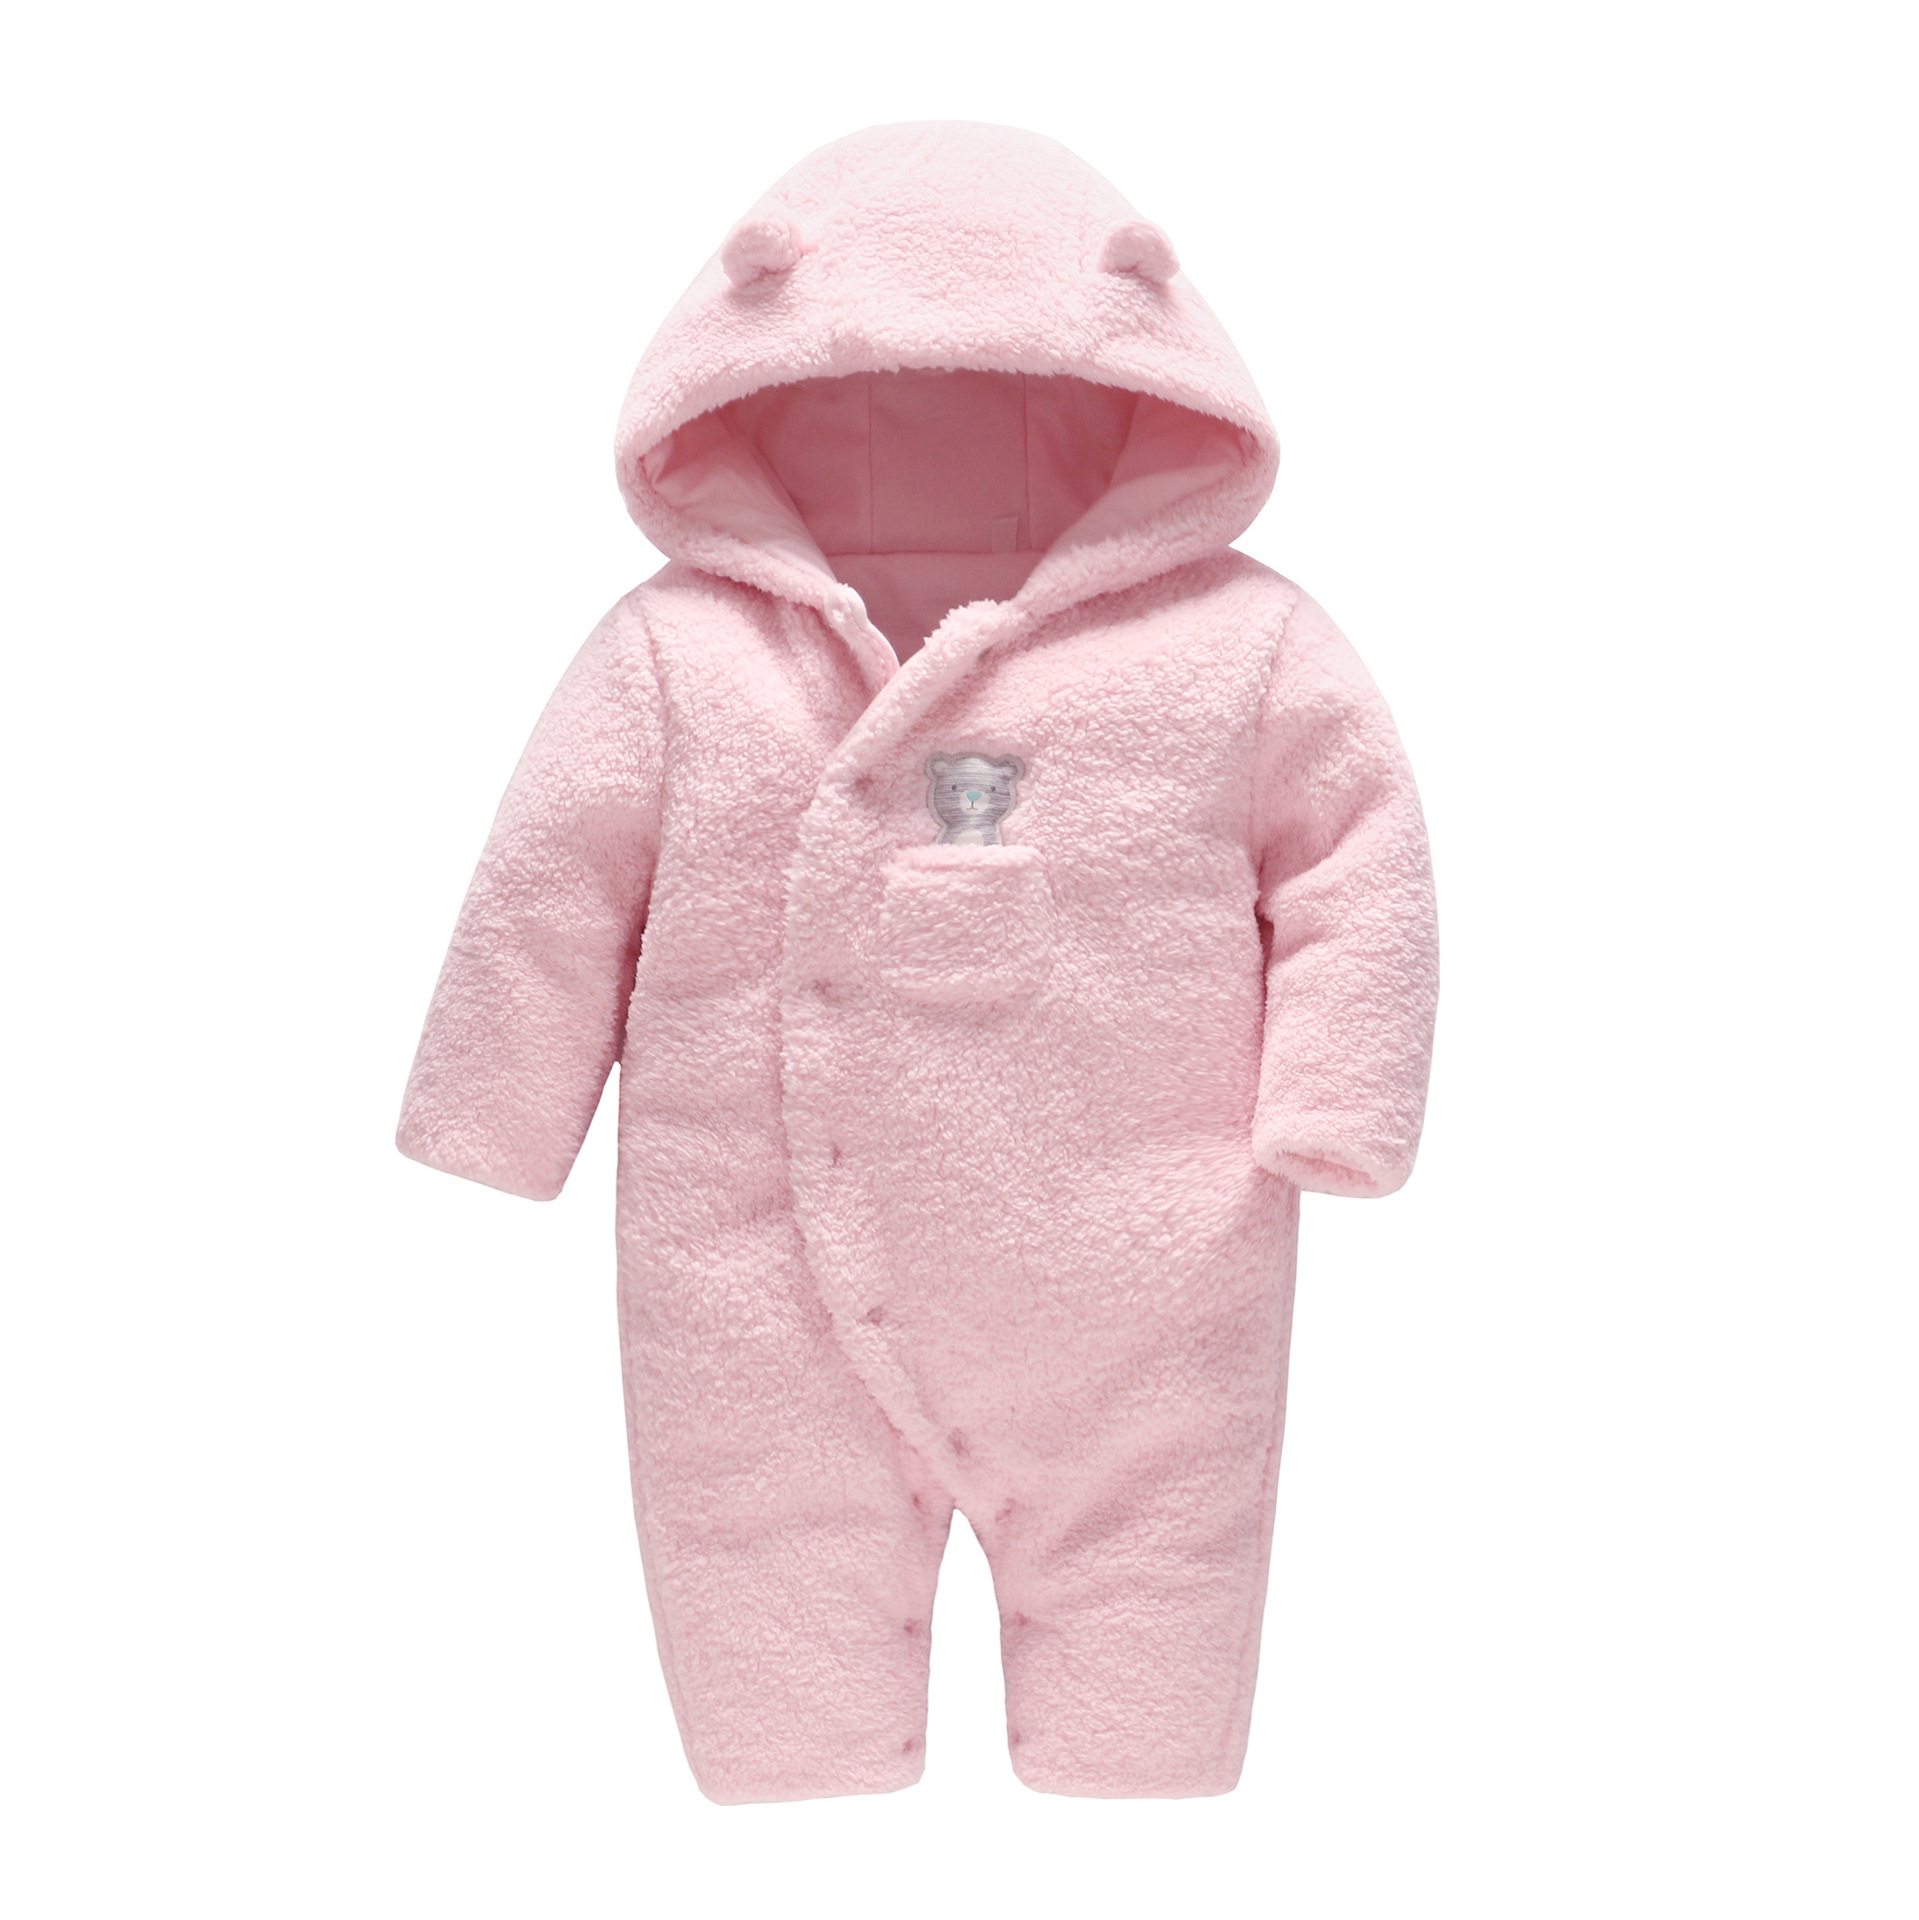 Picturesque Childhood 2019 Winter Clothes Newborn Baby Pure Cotton Romper Pink Bear CLIP Thicken Baby Body Clothing ClimbingPicturesque Childhood 2019 Winter Clothes Newborn Baby Pure Cotton Romper Pink Bear CLIP Thicken Baby Body Clothing Climbing